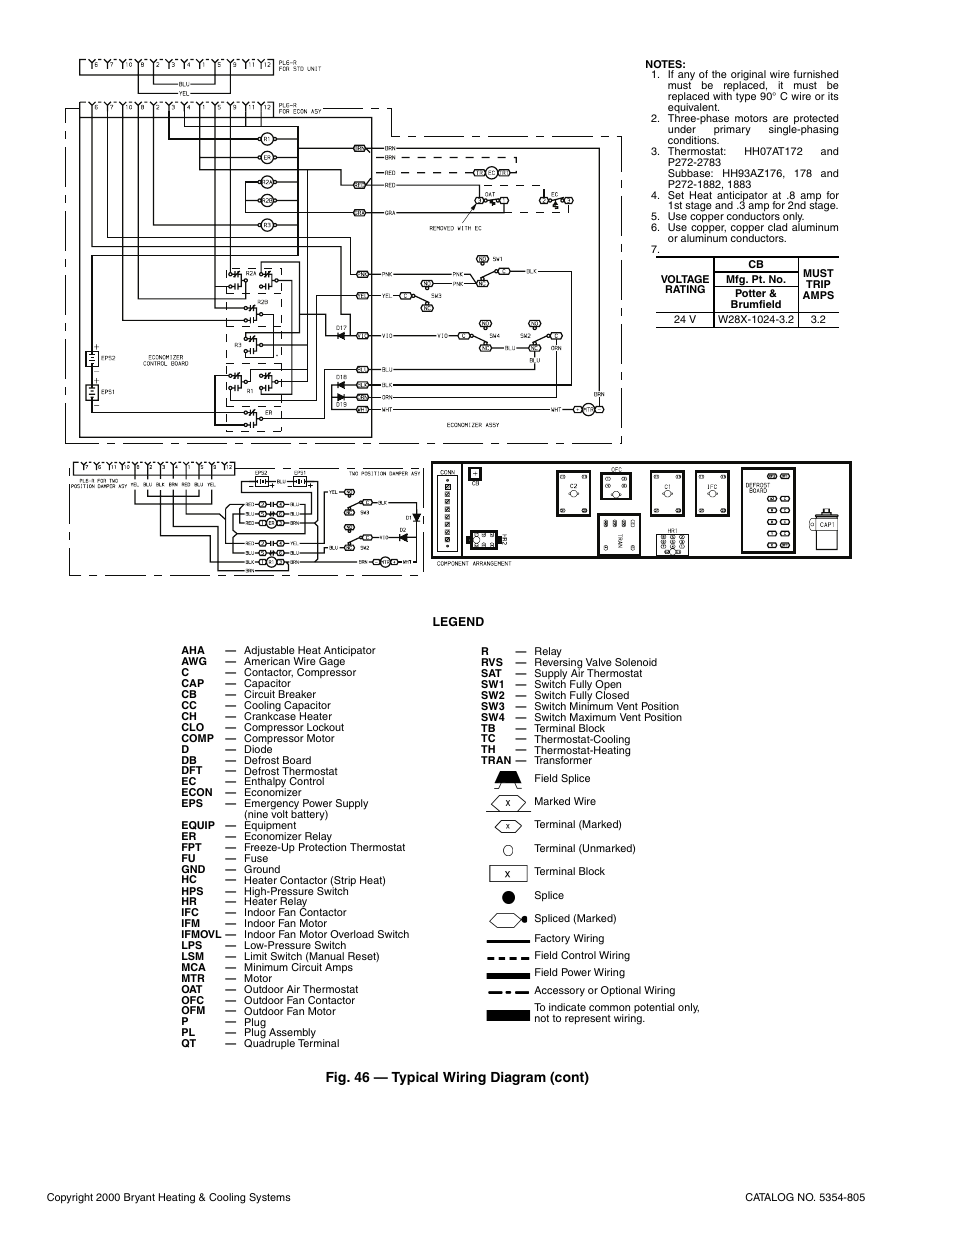 Fig 46 Typical Wiring Diagram Cont Bryant 548d User Manual Cooling Valve Page 38 40